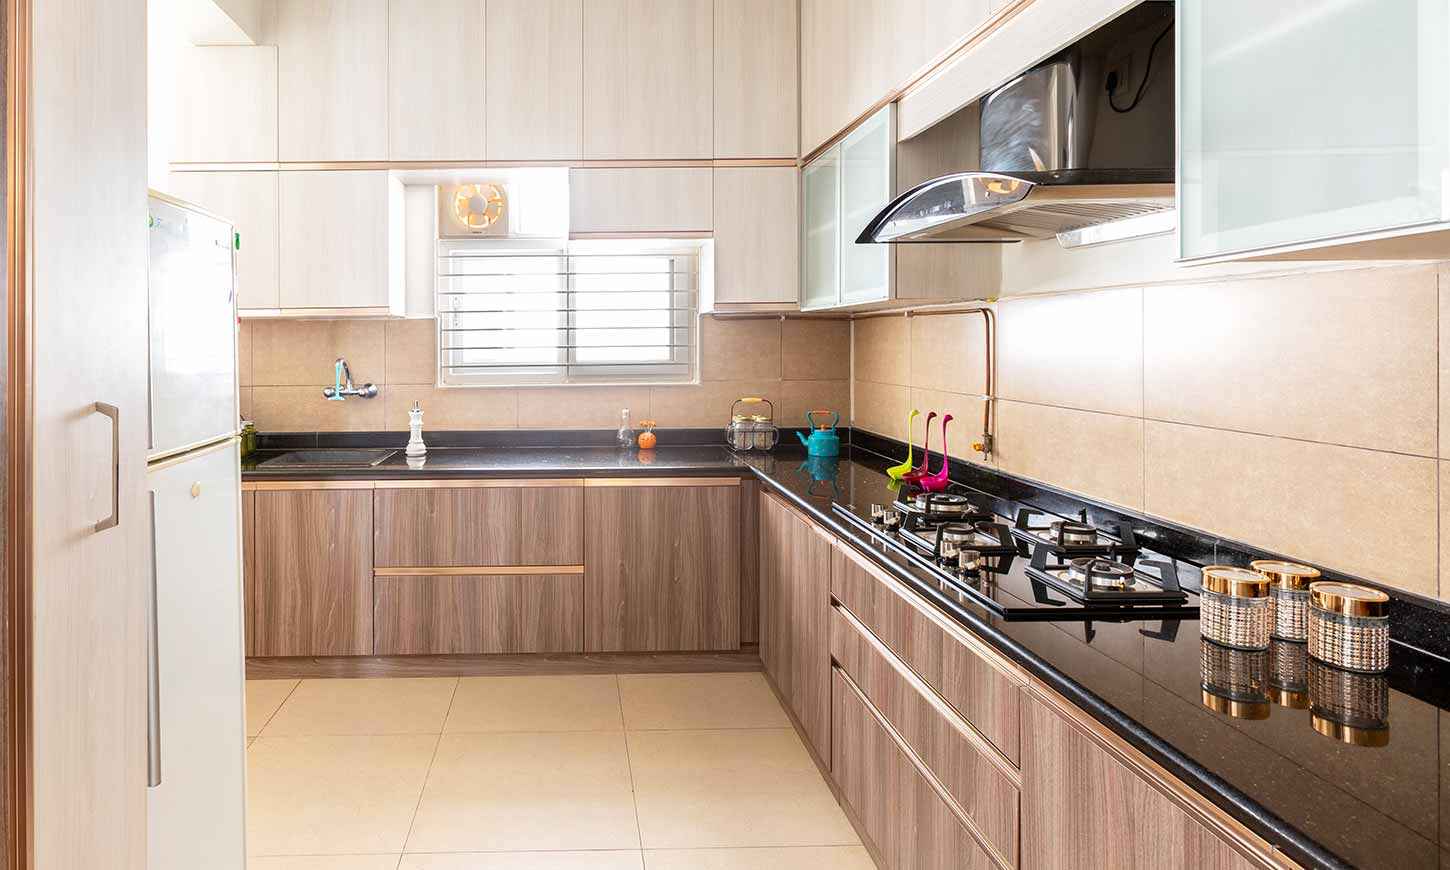 Modular kitchen designed by interior designers & decorators in bangalore